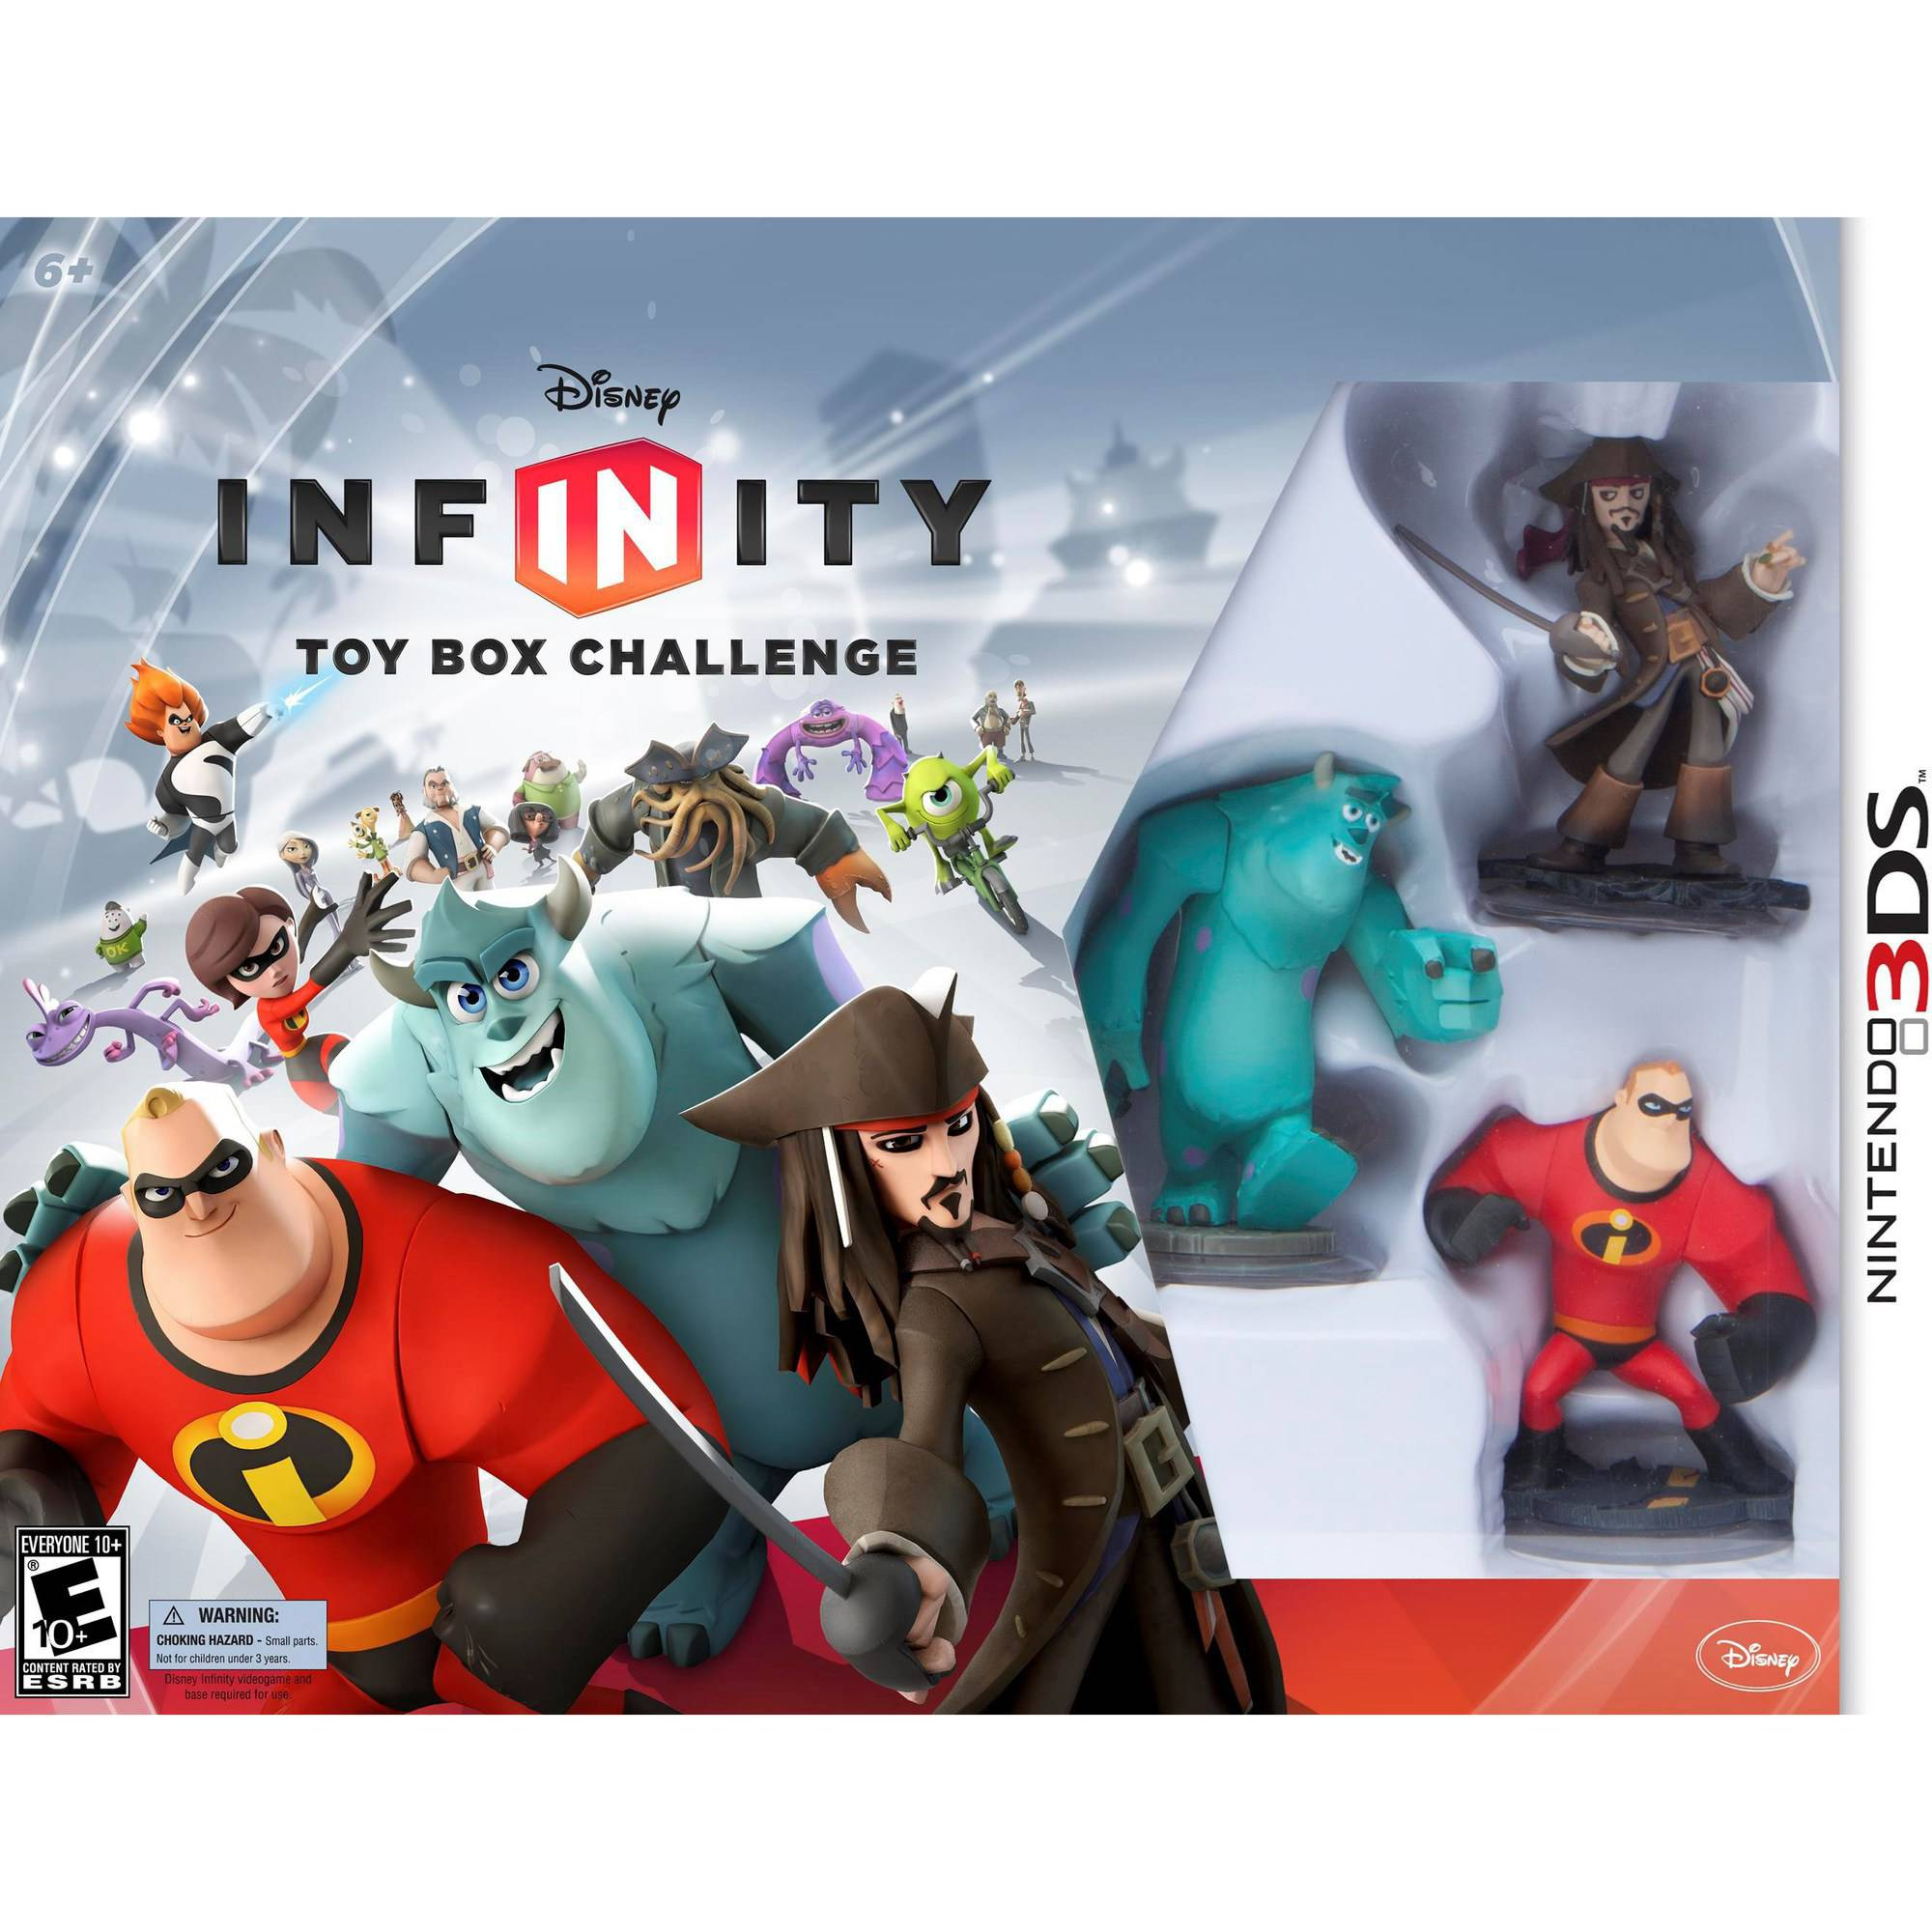 Disney Infinity Toy Box Challenge Starter Pack (Nintendo 3DS) by Avalanche Software